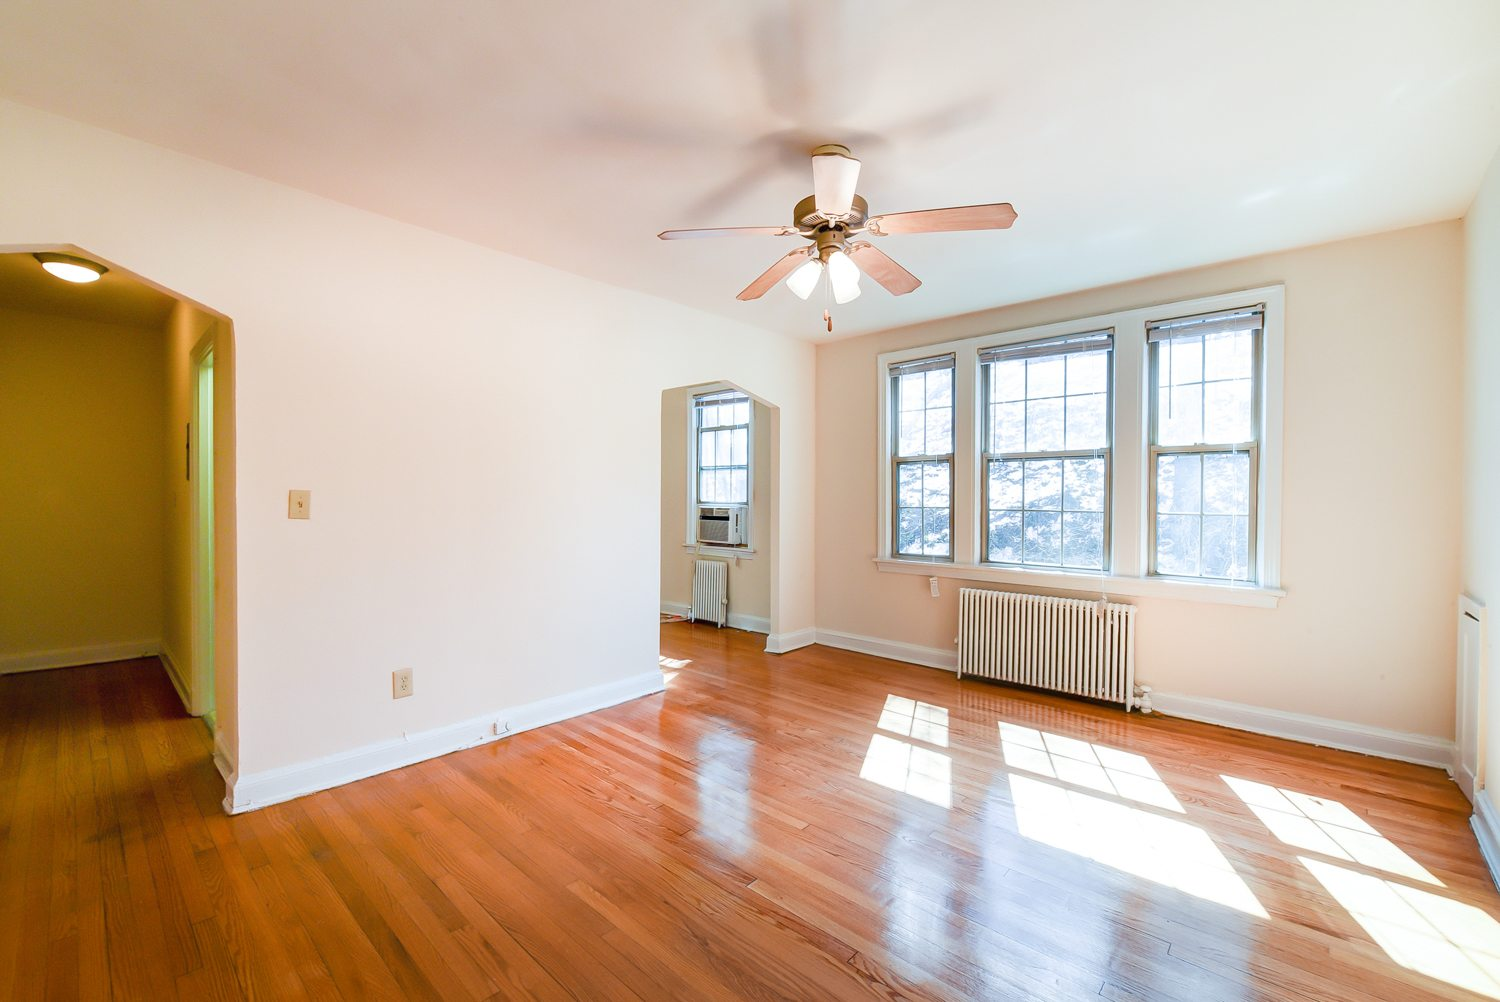 Dog Friendly Apartments For Rent In Washington Dc